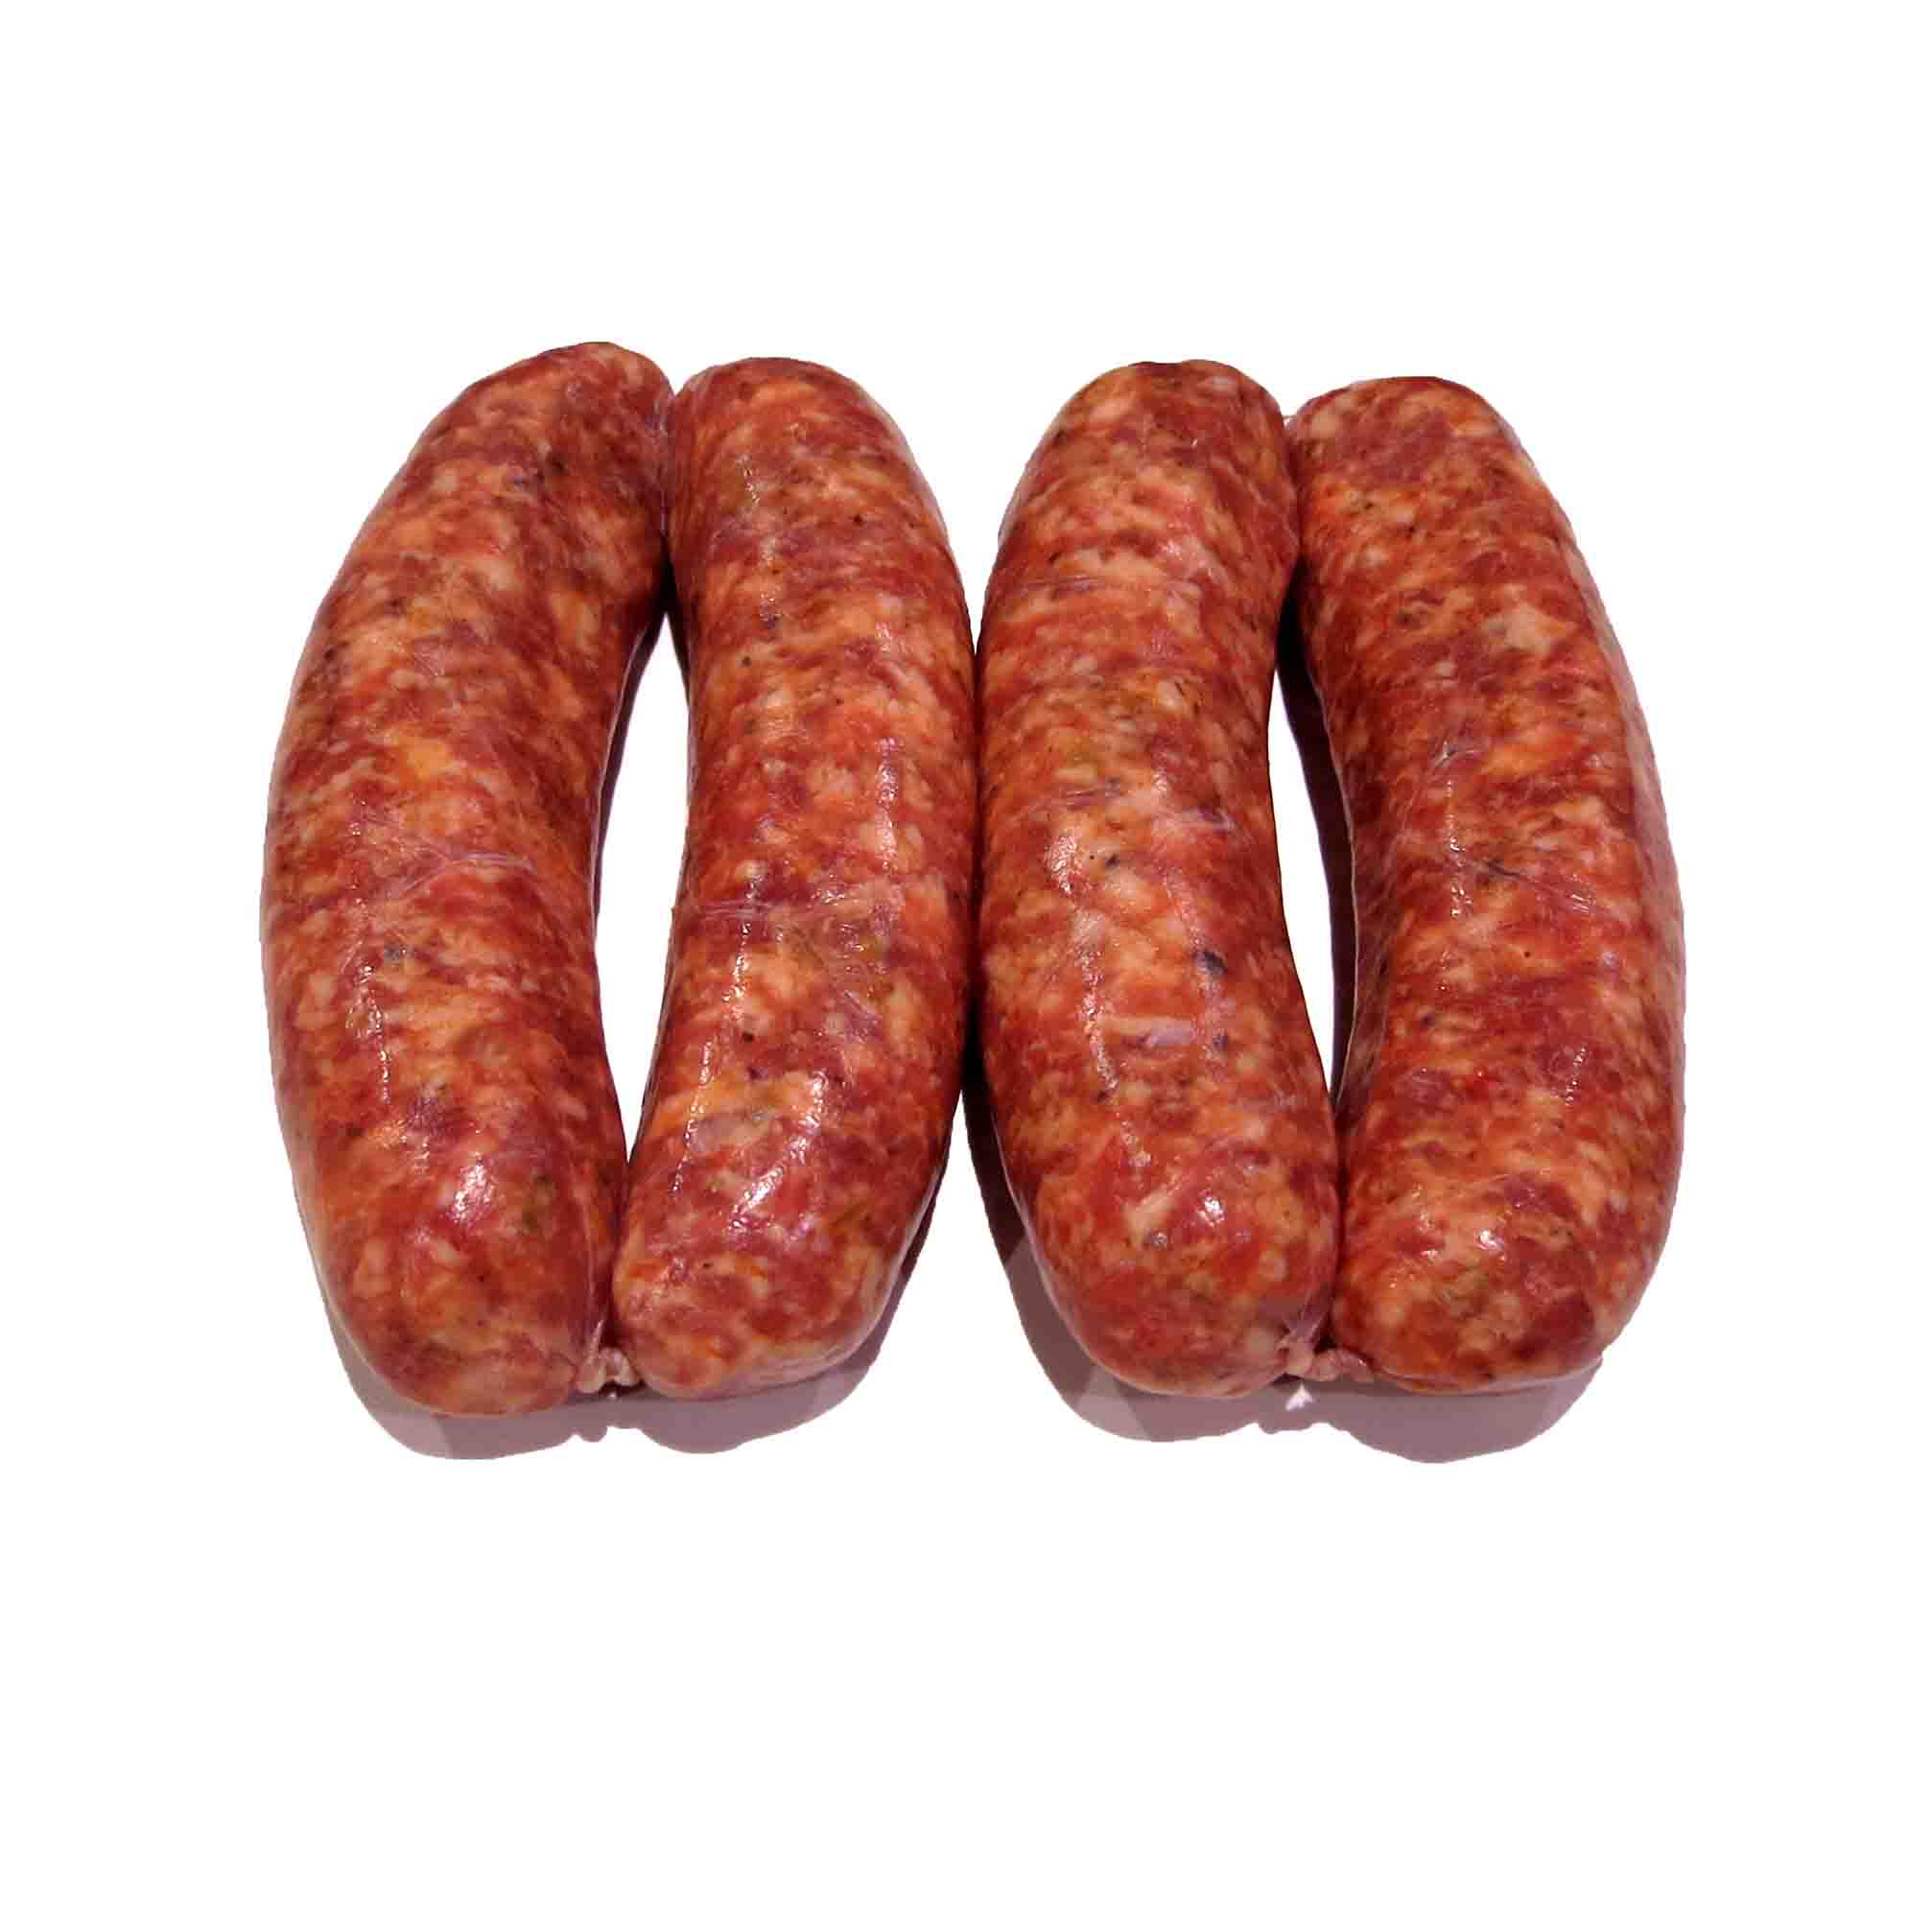 giuseppes original sausage company Western meat is a co-packer and a contract manufacturer both usda and fda products.